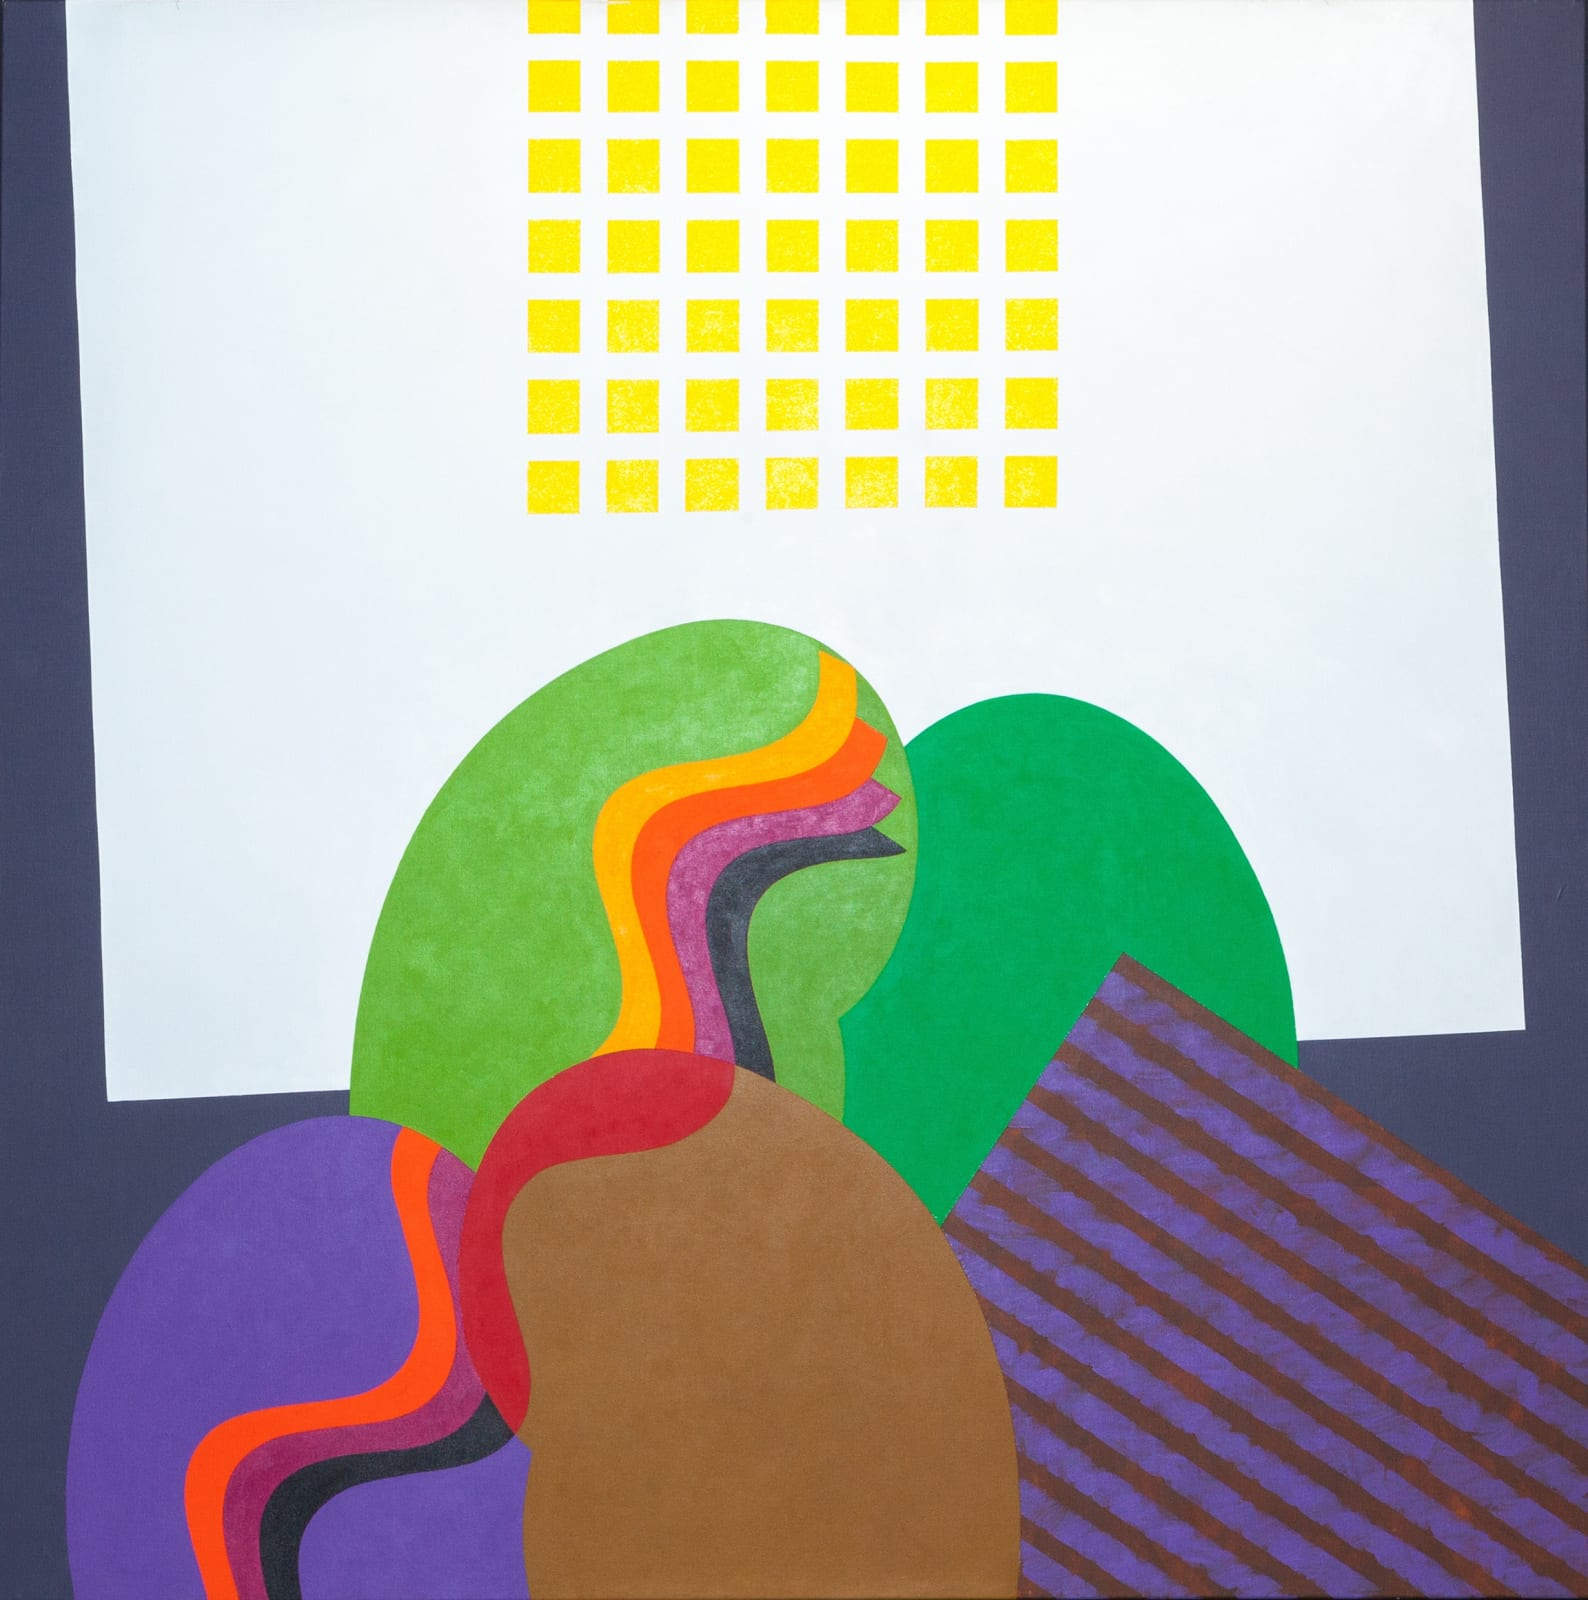 Mohamed Melehi Untitled, 2010 Acrylic on Canvas 150 x 150 cm